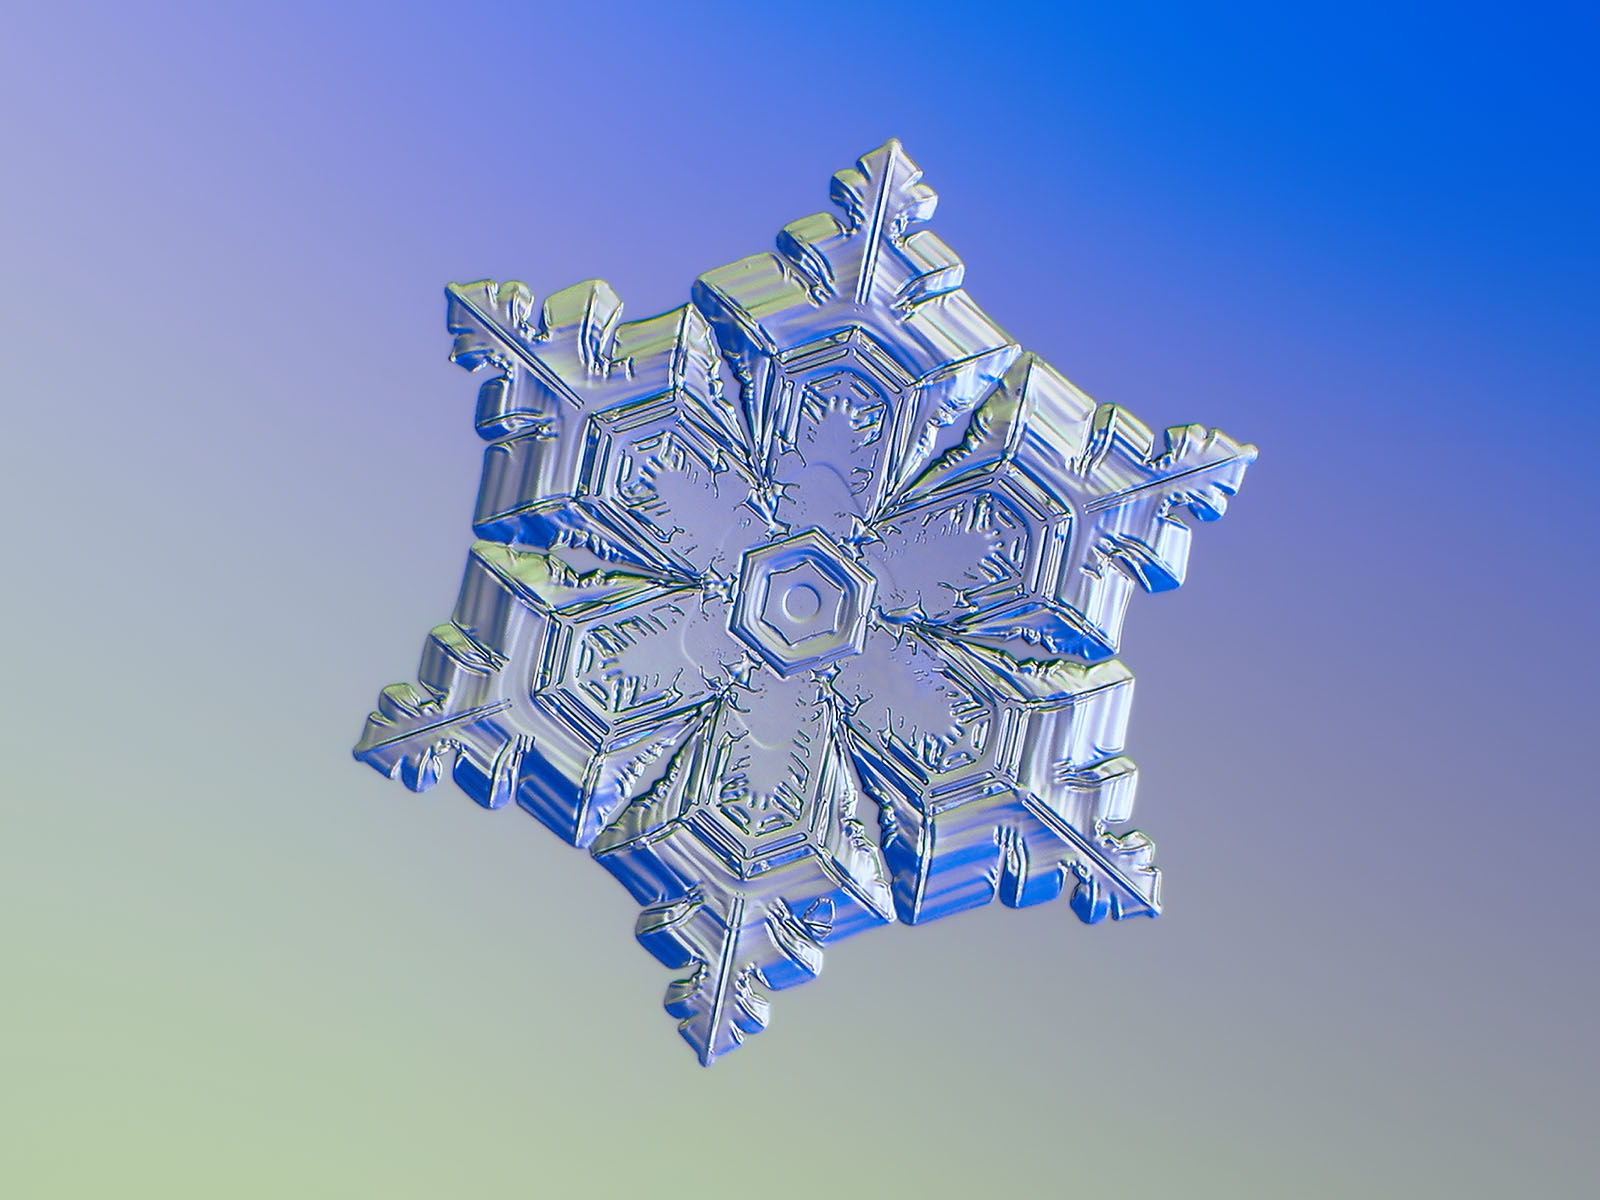 Snowflake photograph: star plate with short, sharp arms and jagged edges, glittering on smooth gradient background